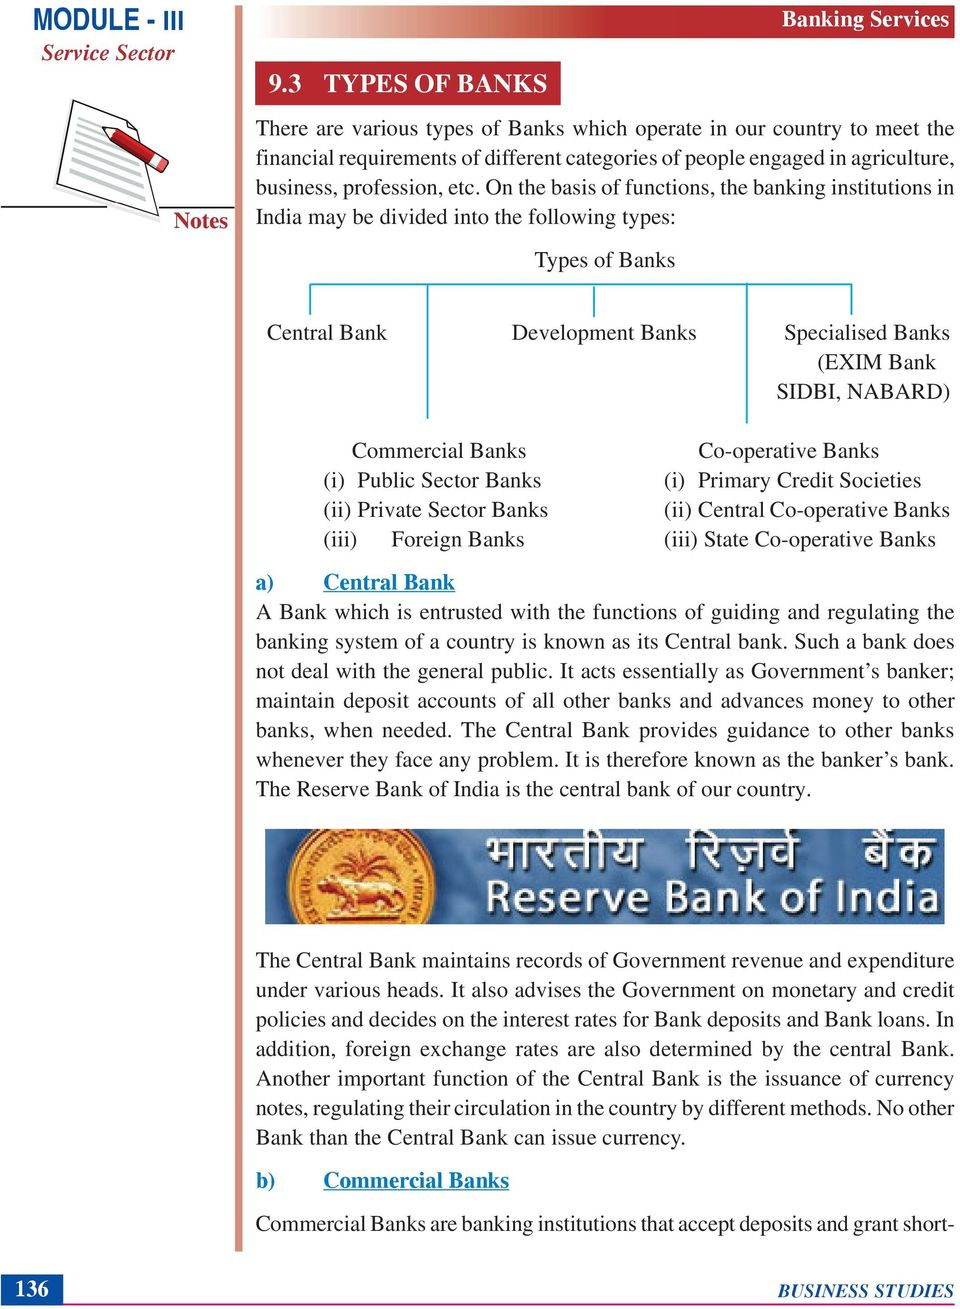 SIDBI, NABARD) Commercial Banks Co-operative Banks (i) Public Sector Banks (i) Primary Credit Societies (ii) Private Sector Banks (ii) Central Co-operative Banks (iii) Foreign Banks (iii) State